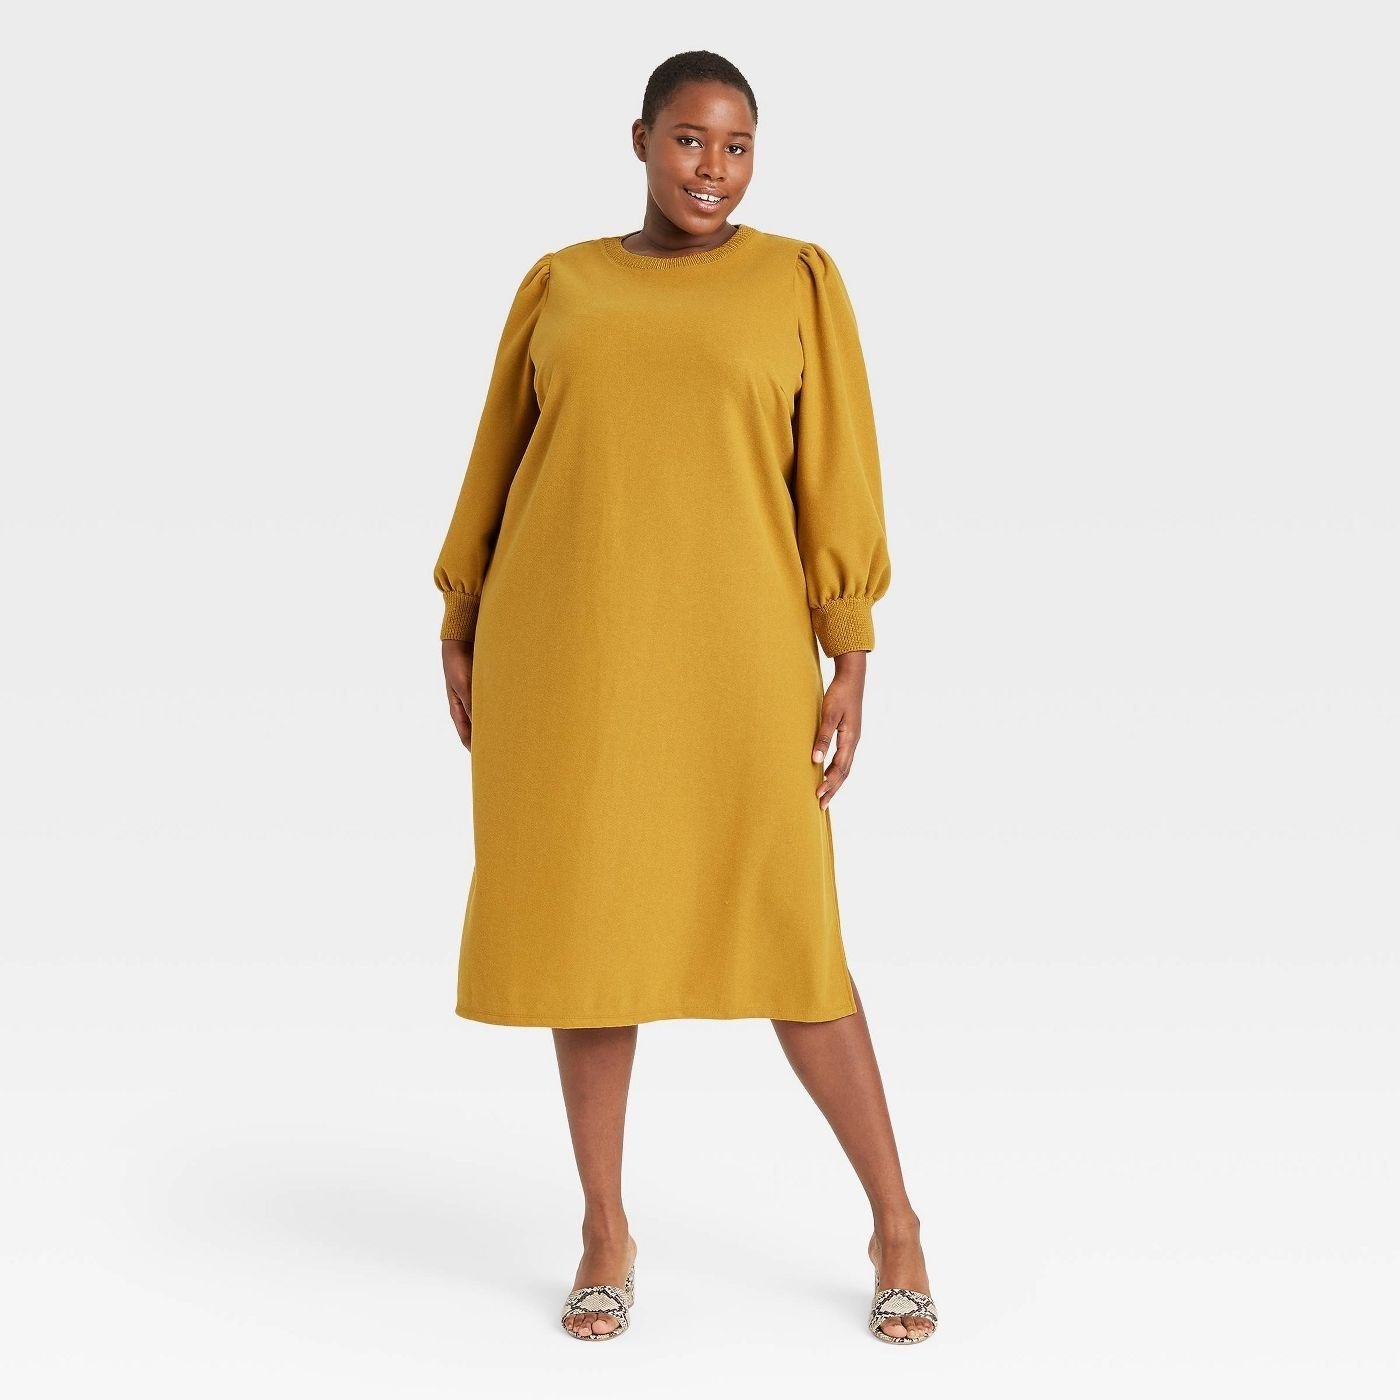 Model in the burnt yellow dress